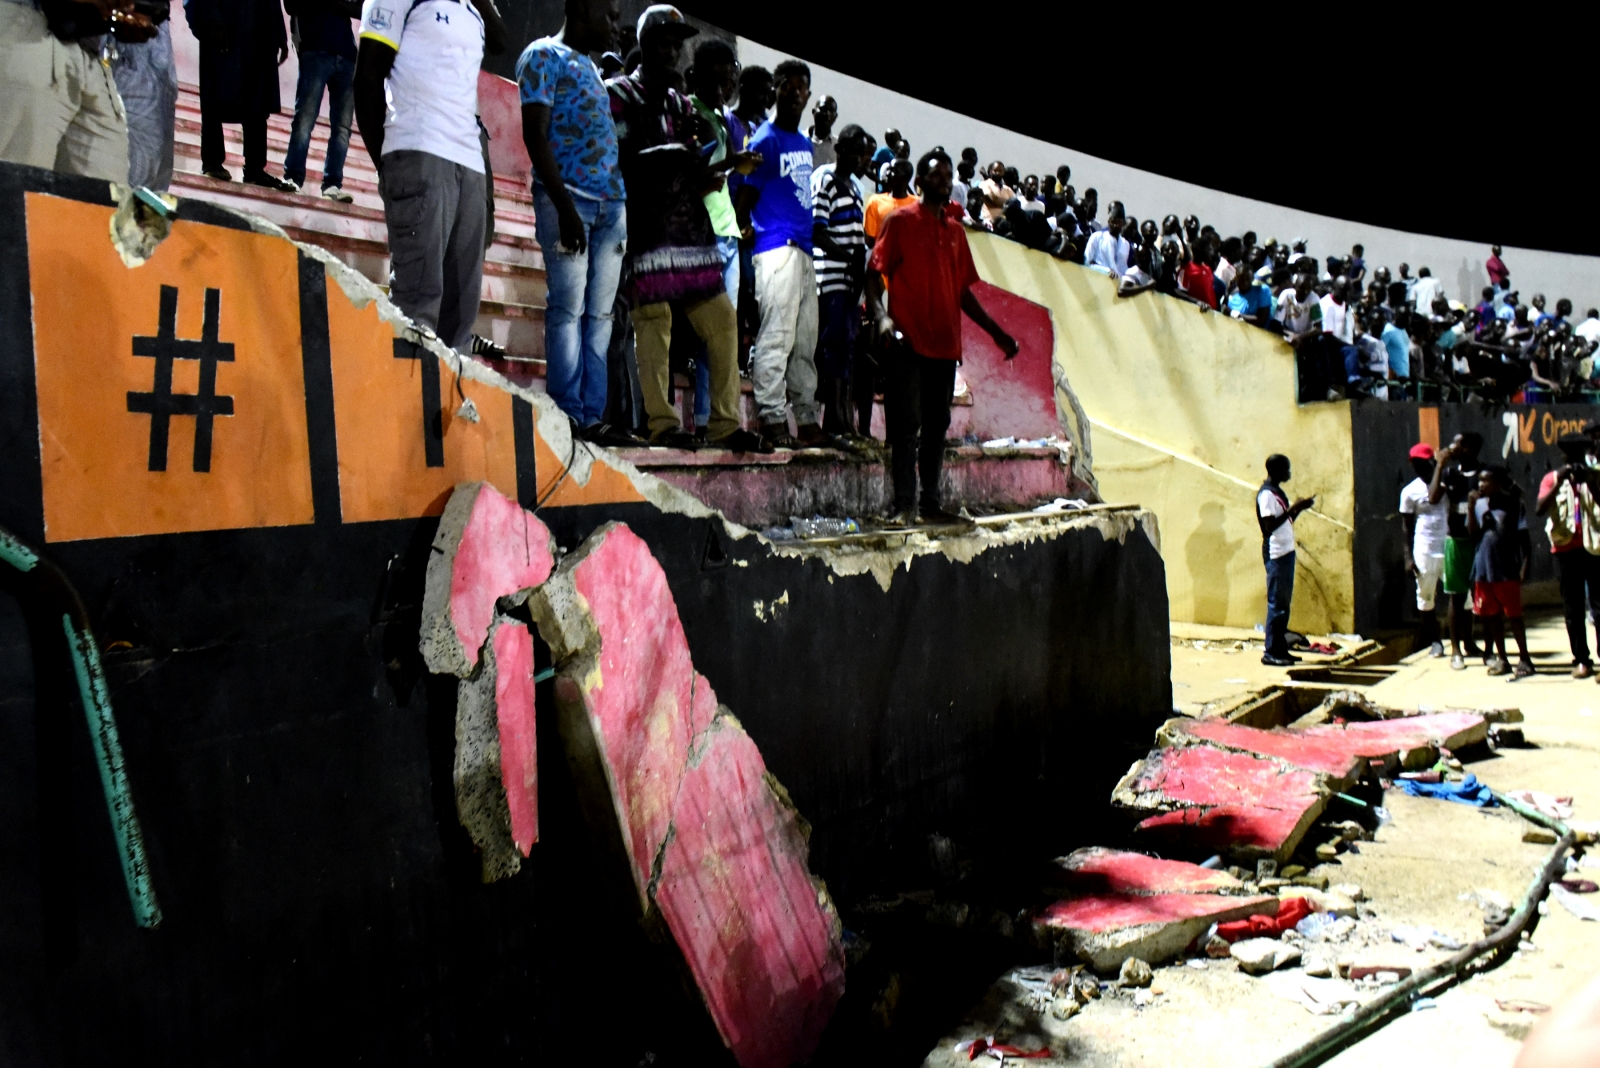 'Eight dead' in wall collapse at Senegal's Demba Diop